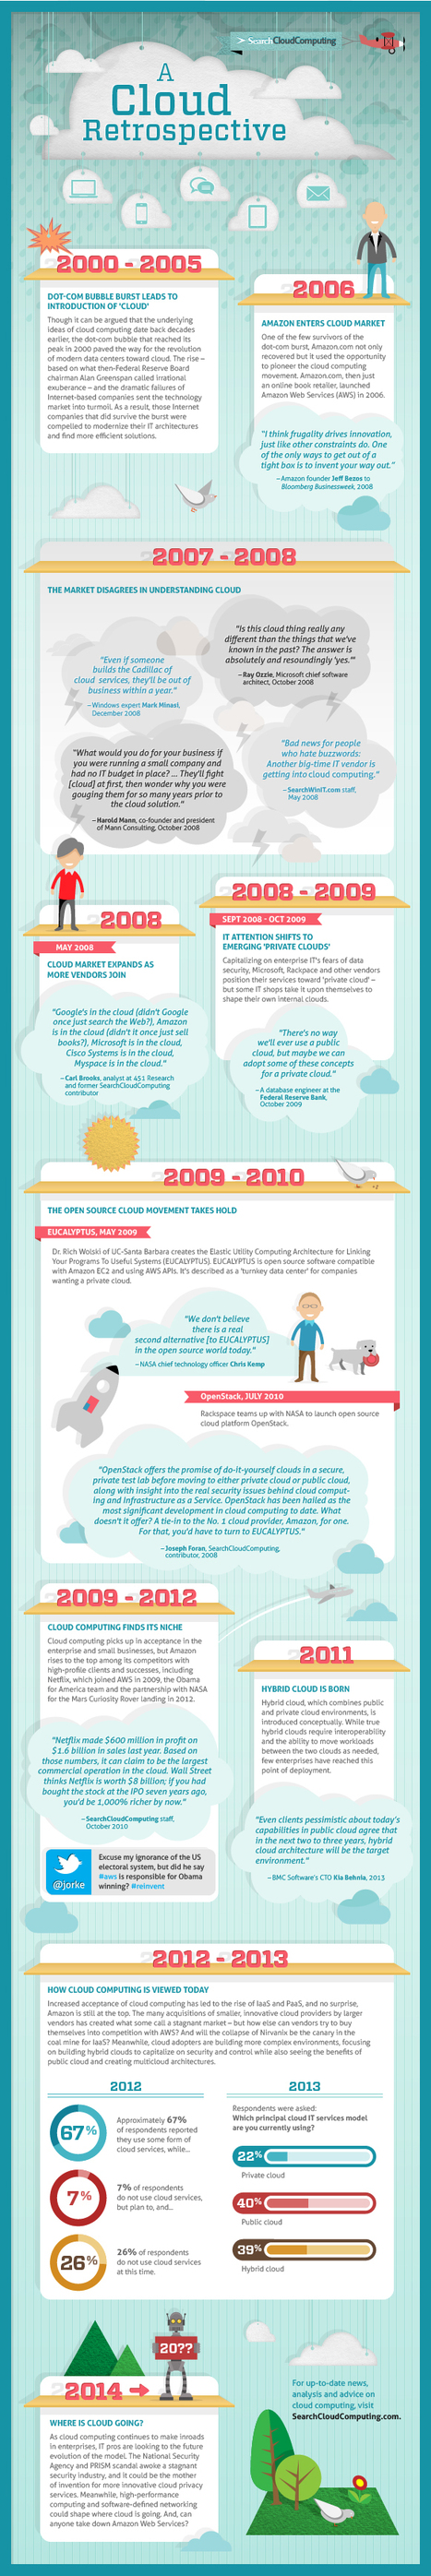 INFOGRAPHIC: Cloud computing timeline illustrates cloud's past, predicts its future | Cloud Central | Scoop.it